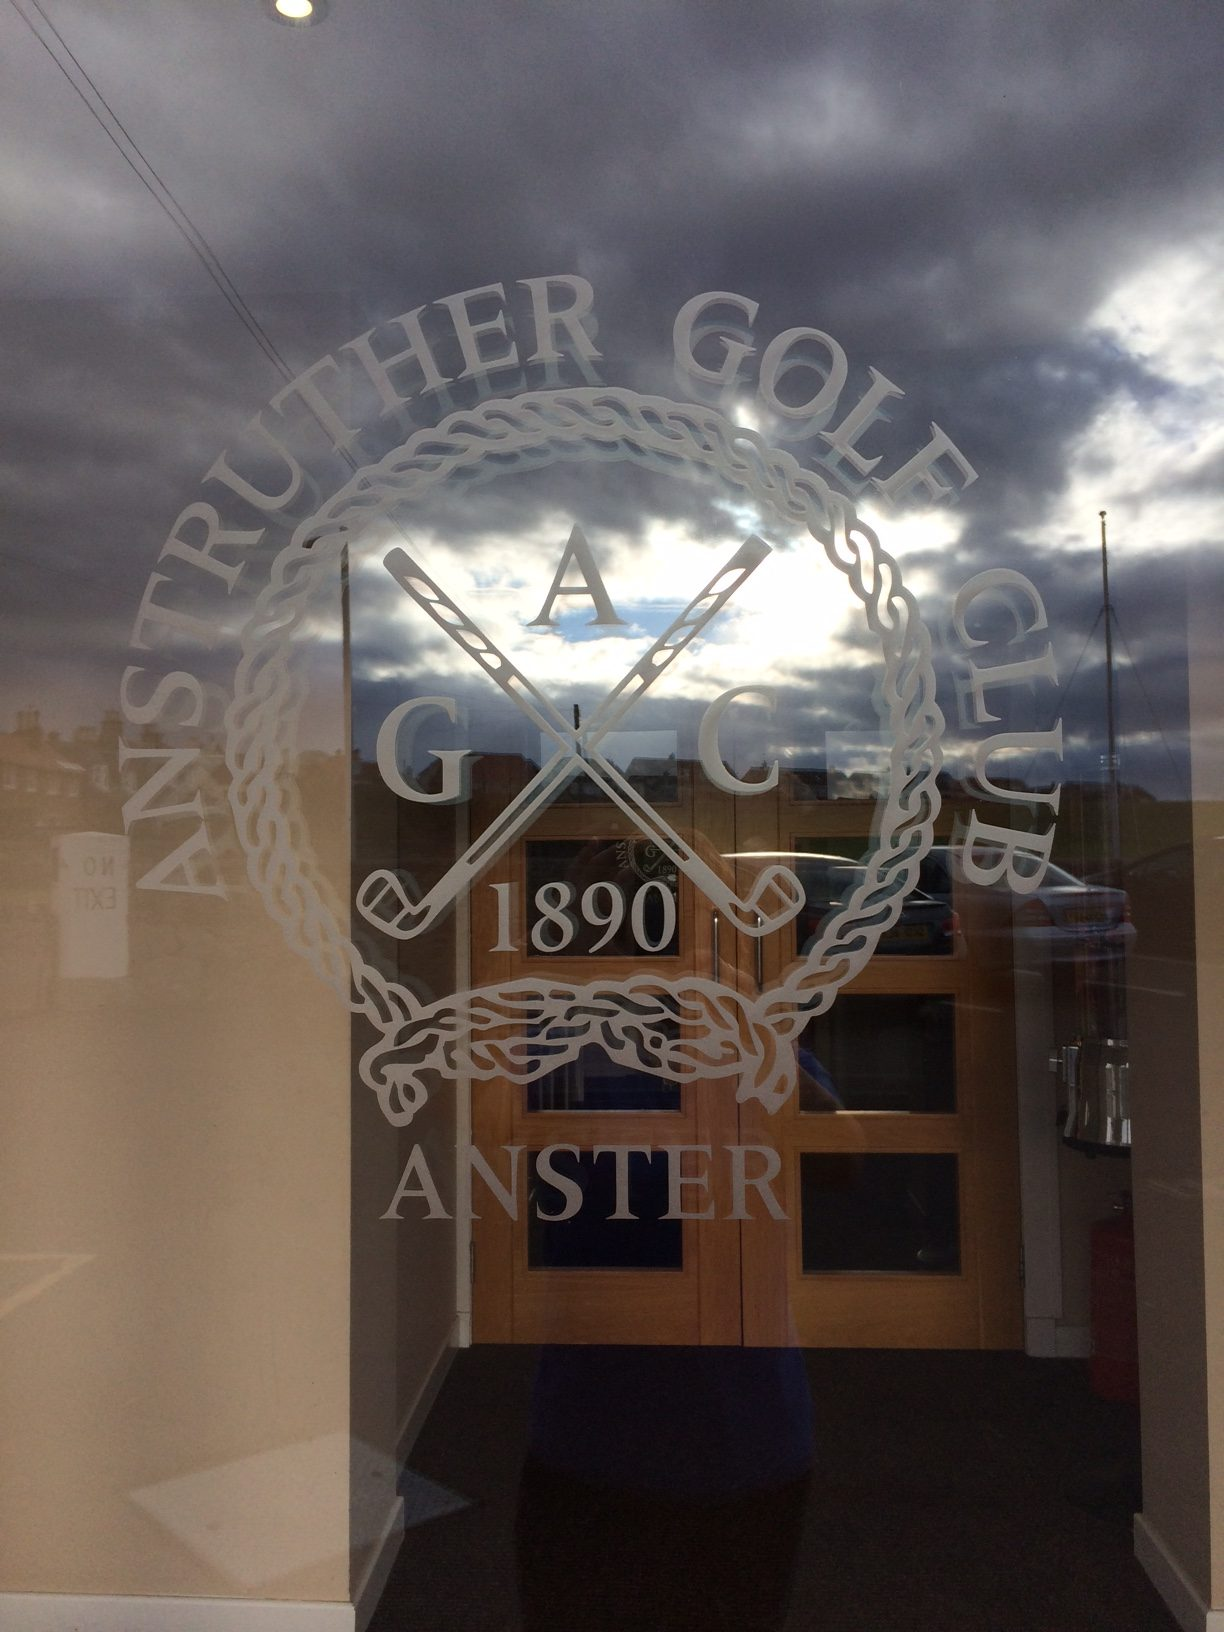 Anstruther golf club logo on the glass clubhouse door